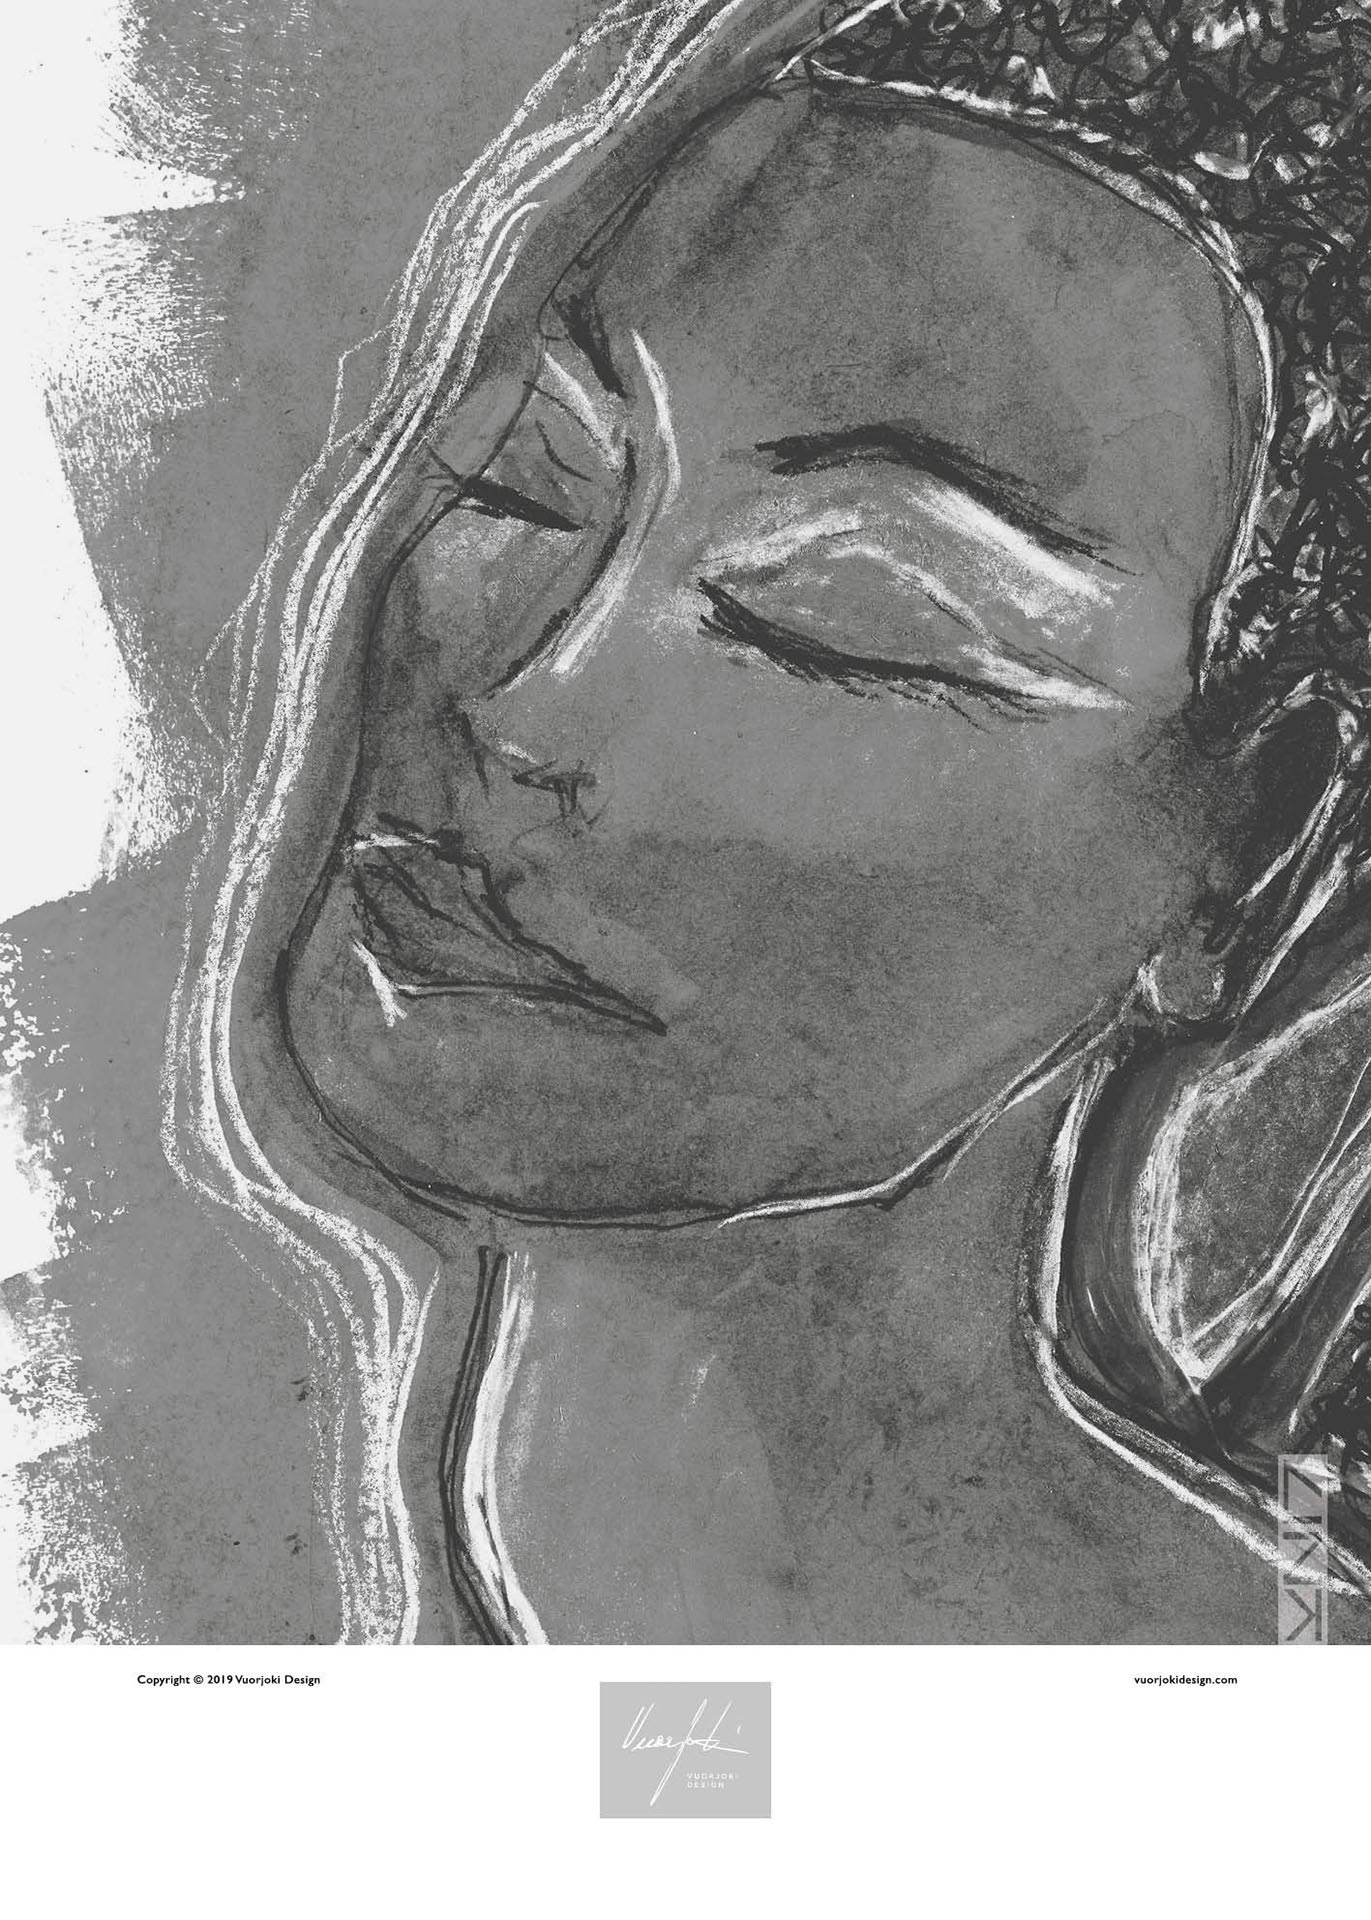 A greyscale portrait art print of a woman with her eyes closed and a logo underneath.